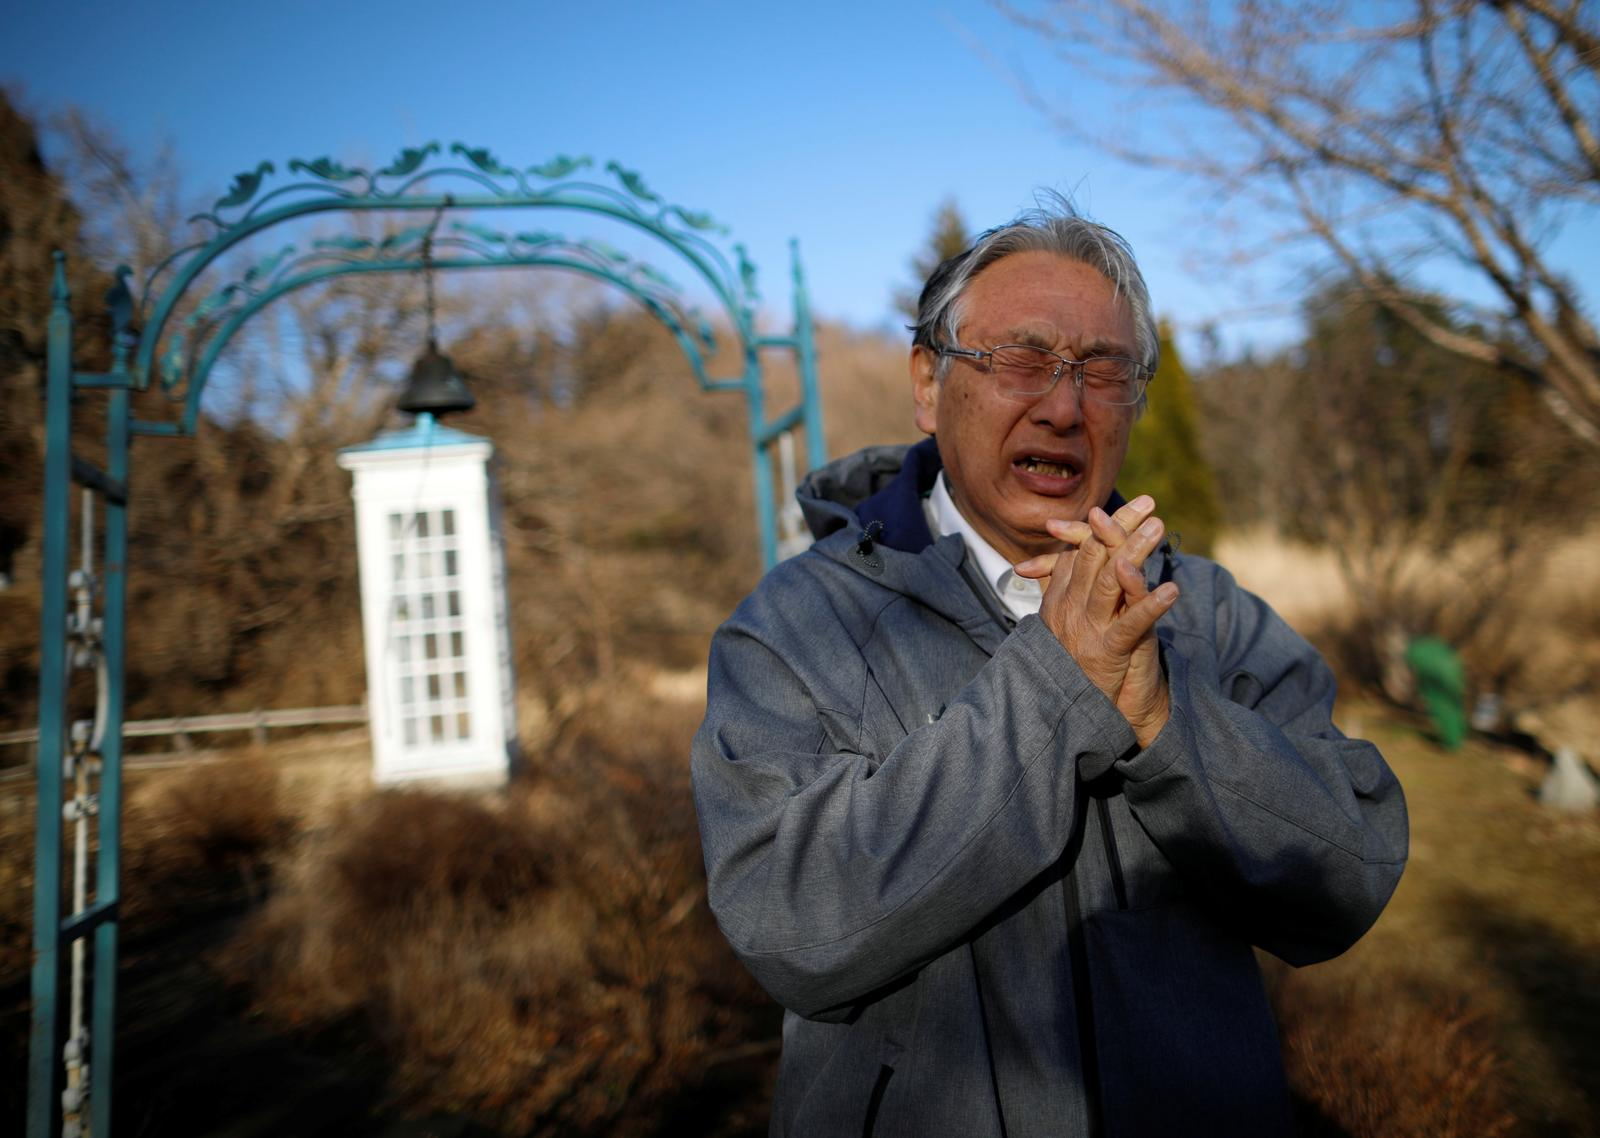 Kazuyoshi Sasaki, 67, who lost his wife, Miwako, in the March 11, 2011 earthquake and tsunami disaster, reacts as he steps out of Kazo-no-Denwa (The phone of the Wind), a phone booth set up for people to call their deceased loved ones, after calling his late wife, ahead of the 10th anniversary of when the disaster happened, at Bell Gardia Kujira-yama in Otsuchi town, Iwate Prefecture, northern Japan, February 27, 2021. Photo: Reuters